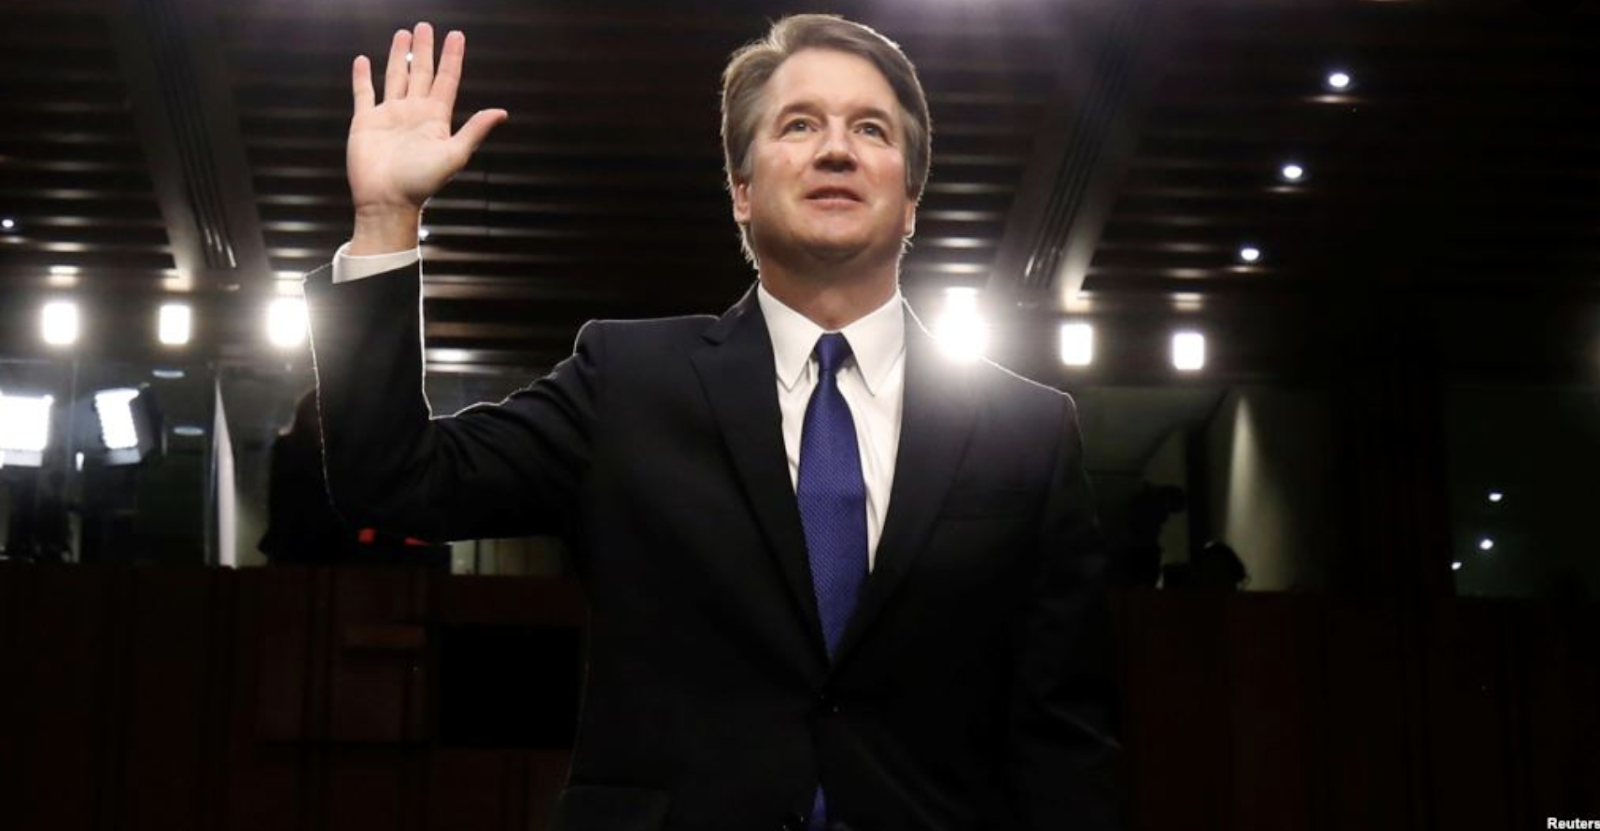 [Photo: Brett Kavanaugh. Source: Reuters]